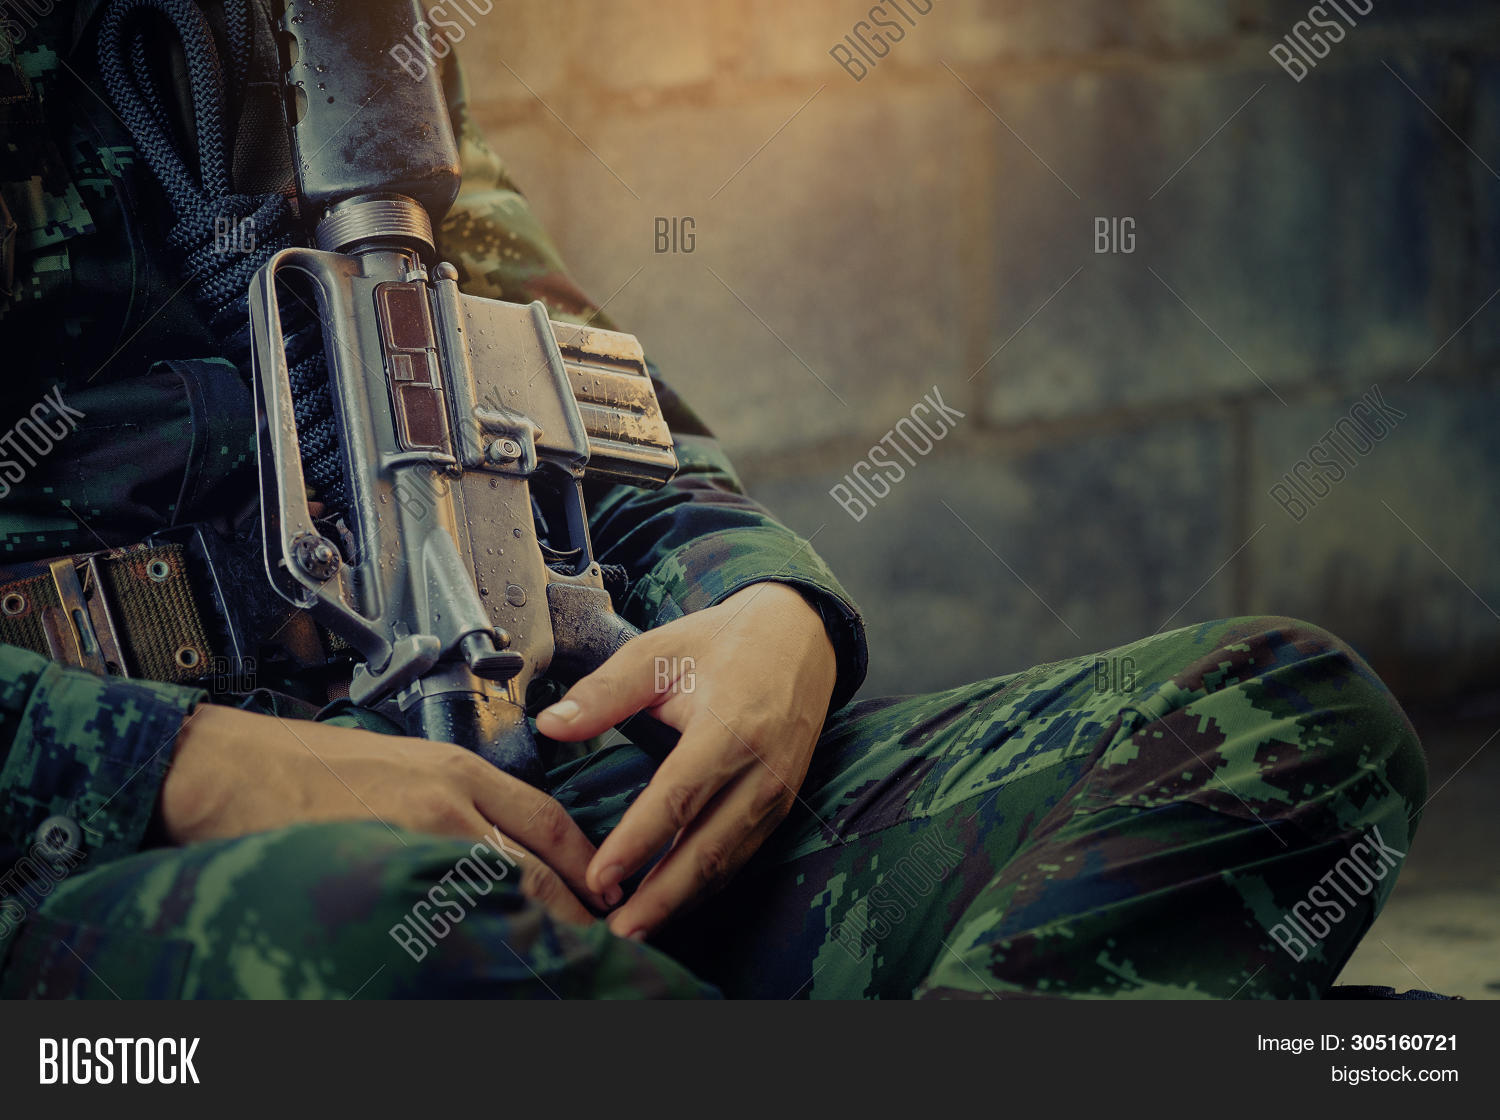 anti,arm,army,background,backpack,camouflage,contractor,danger,fighter,forest,green,guard,gun,hunter,infantry,israel,judaism,killer,male,man,military,occupation,outdoors,people,person,professional,protective,ranger,resting,rifle,sad,shotgun,sitting,sleep,sleeping,sniper,soldier,tired,training,uniform,war,warrior,weapon,young